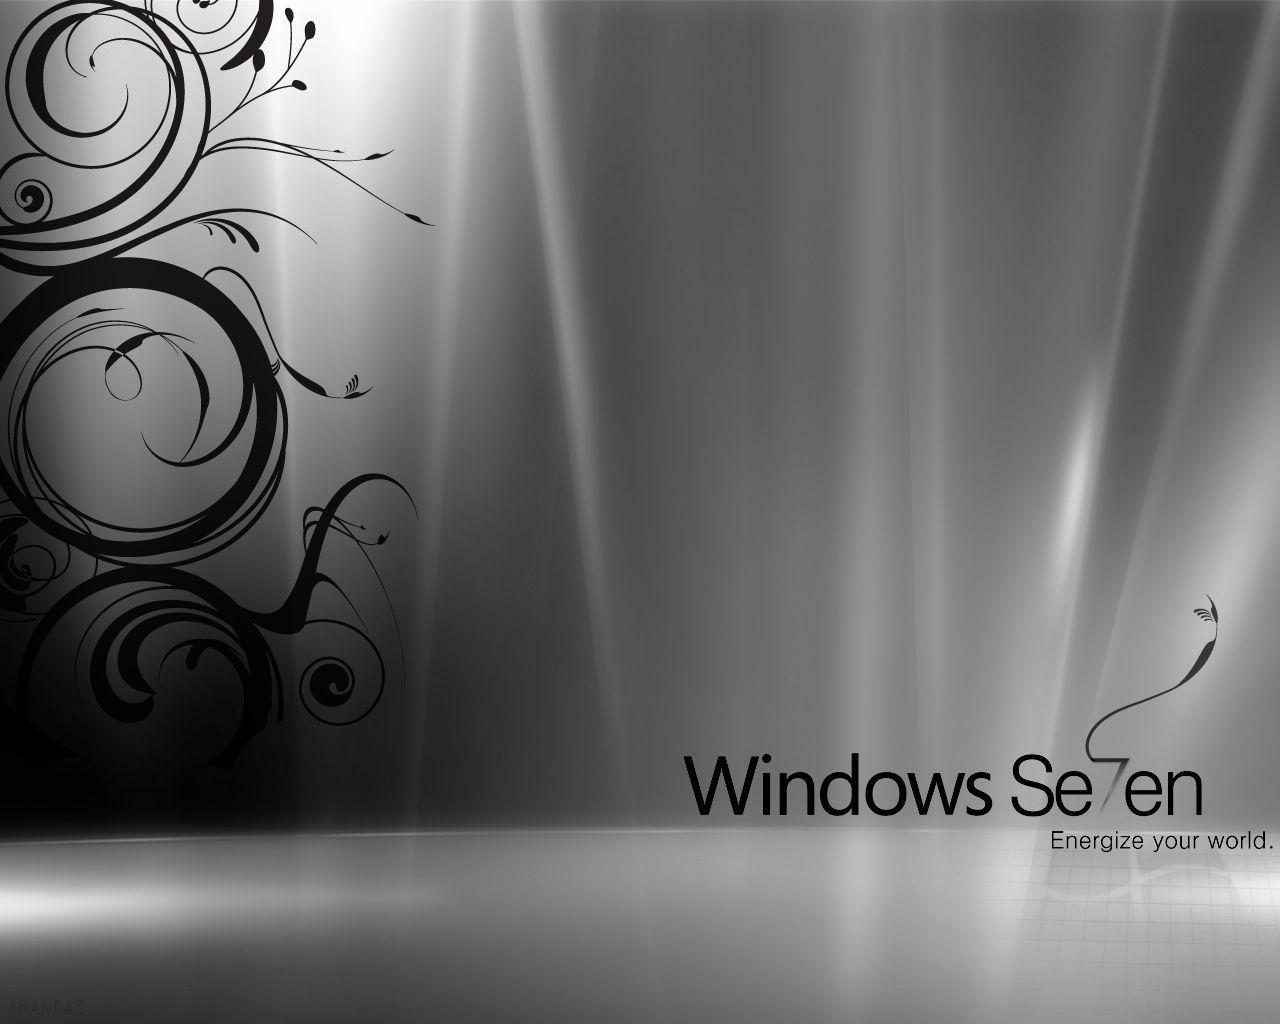 70 Windows 7 Wallpapers